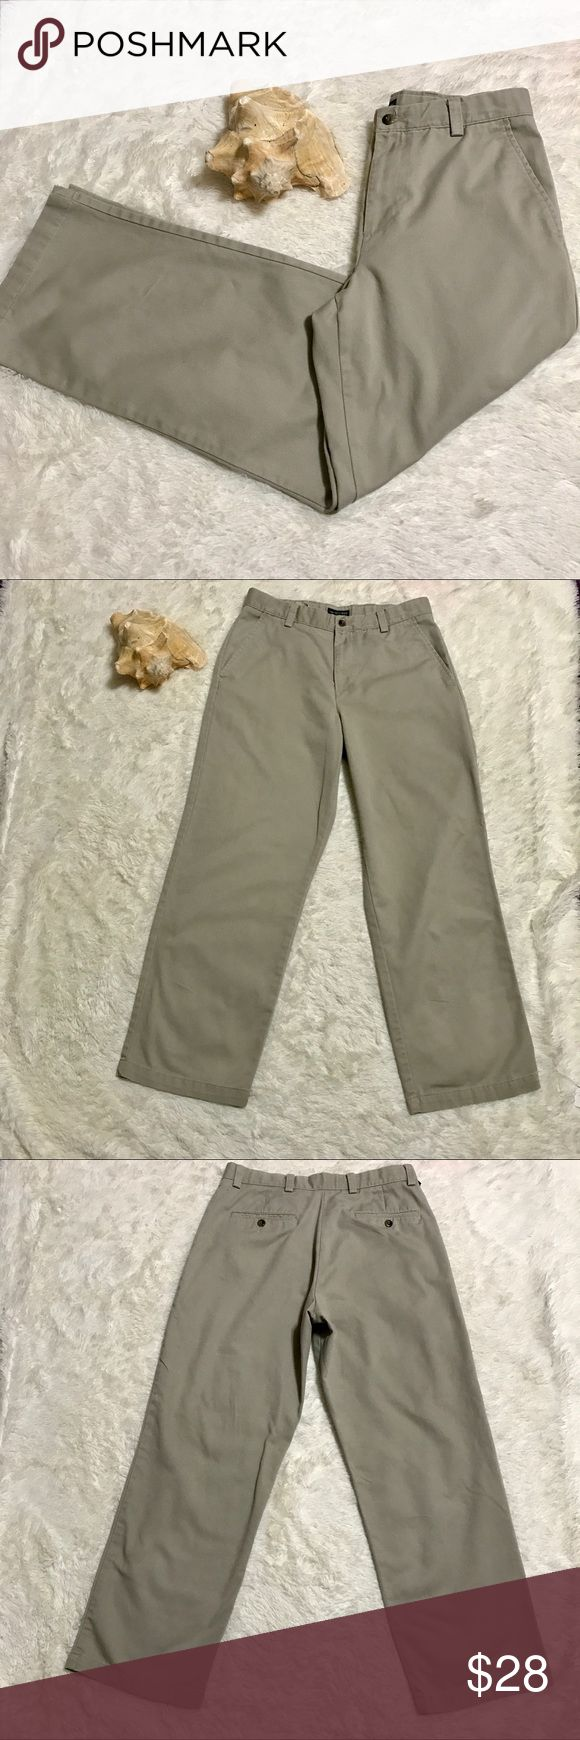 ⛵️ Men's Dockers Recode ⛵️ Men's Dockers Recode   32 x 30   Khaki Color  The back pockets are button closure and can also be worn for a Dressy Casual look  No Trades   #209 Dockers Pants Dress